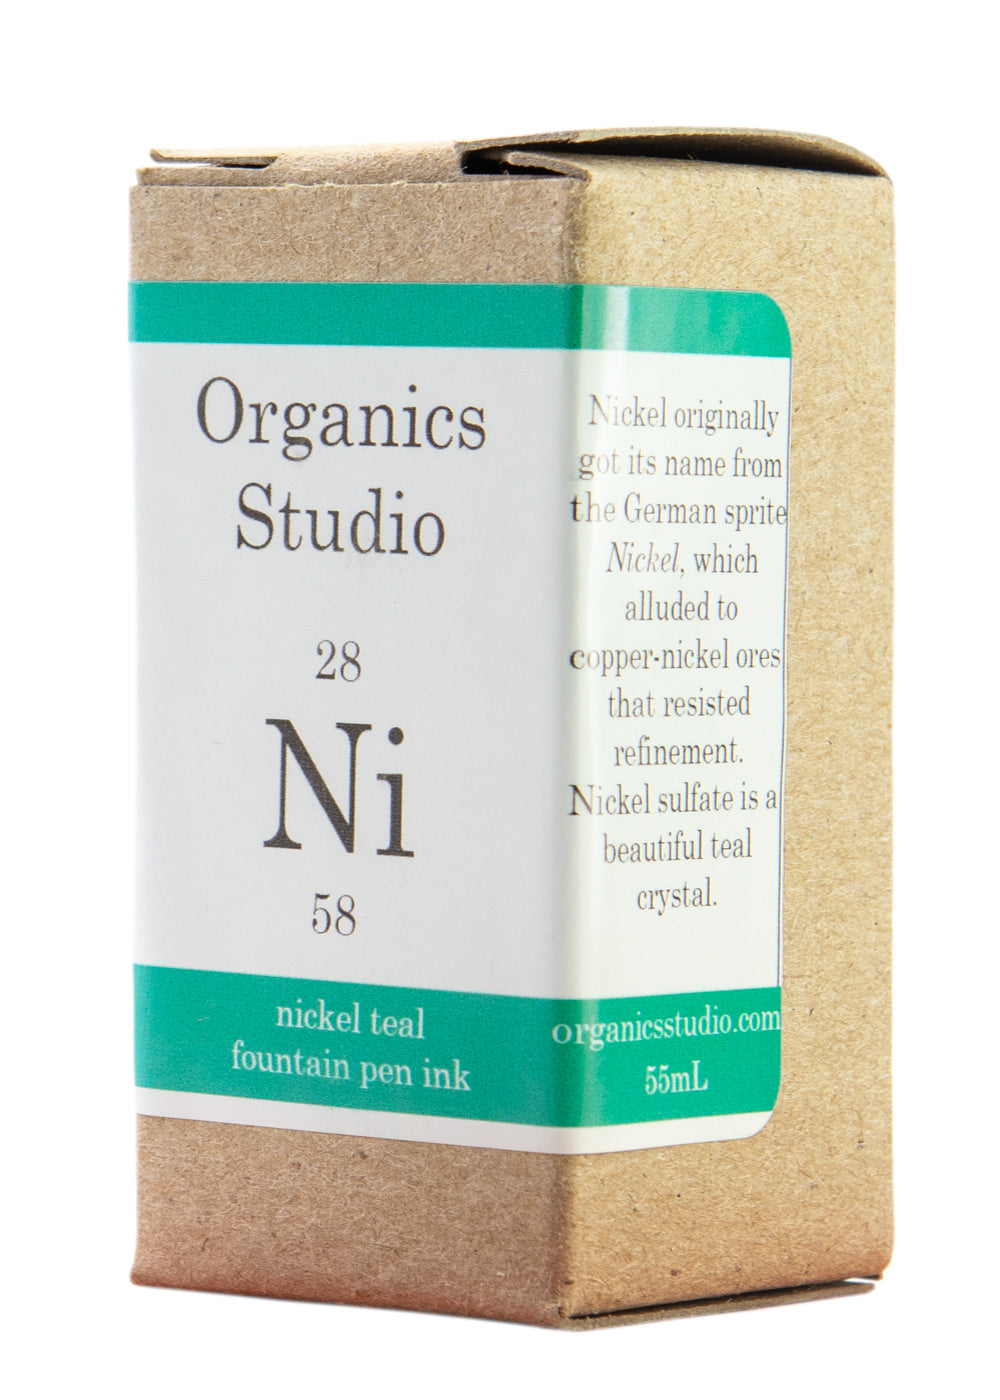 Organics Studio Elements Nickel Teal